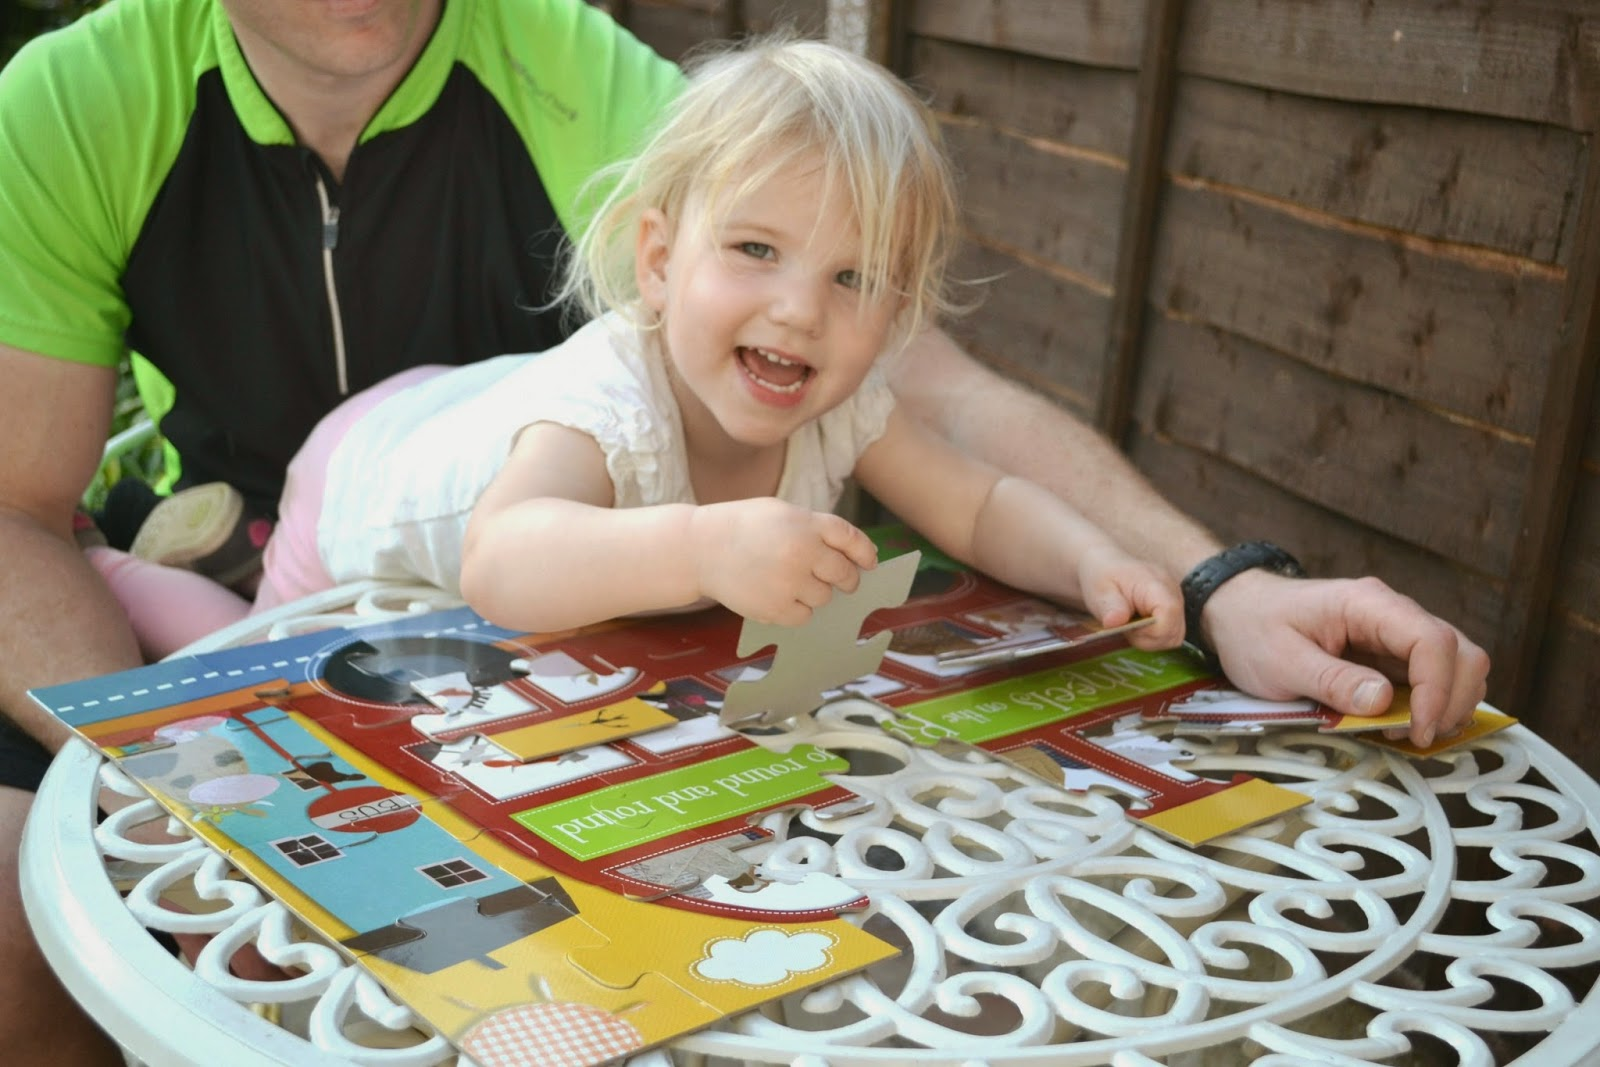 Tin Box Tot playing with a jigsaw puzzle